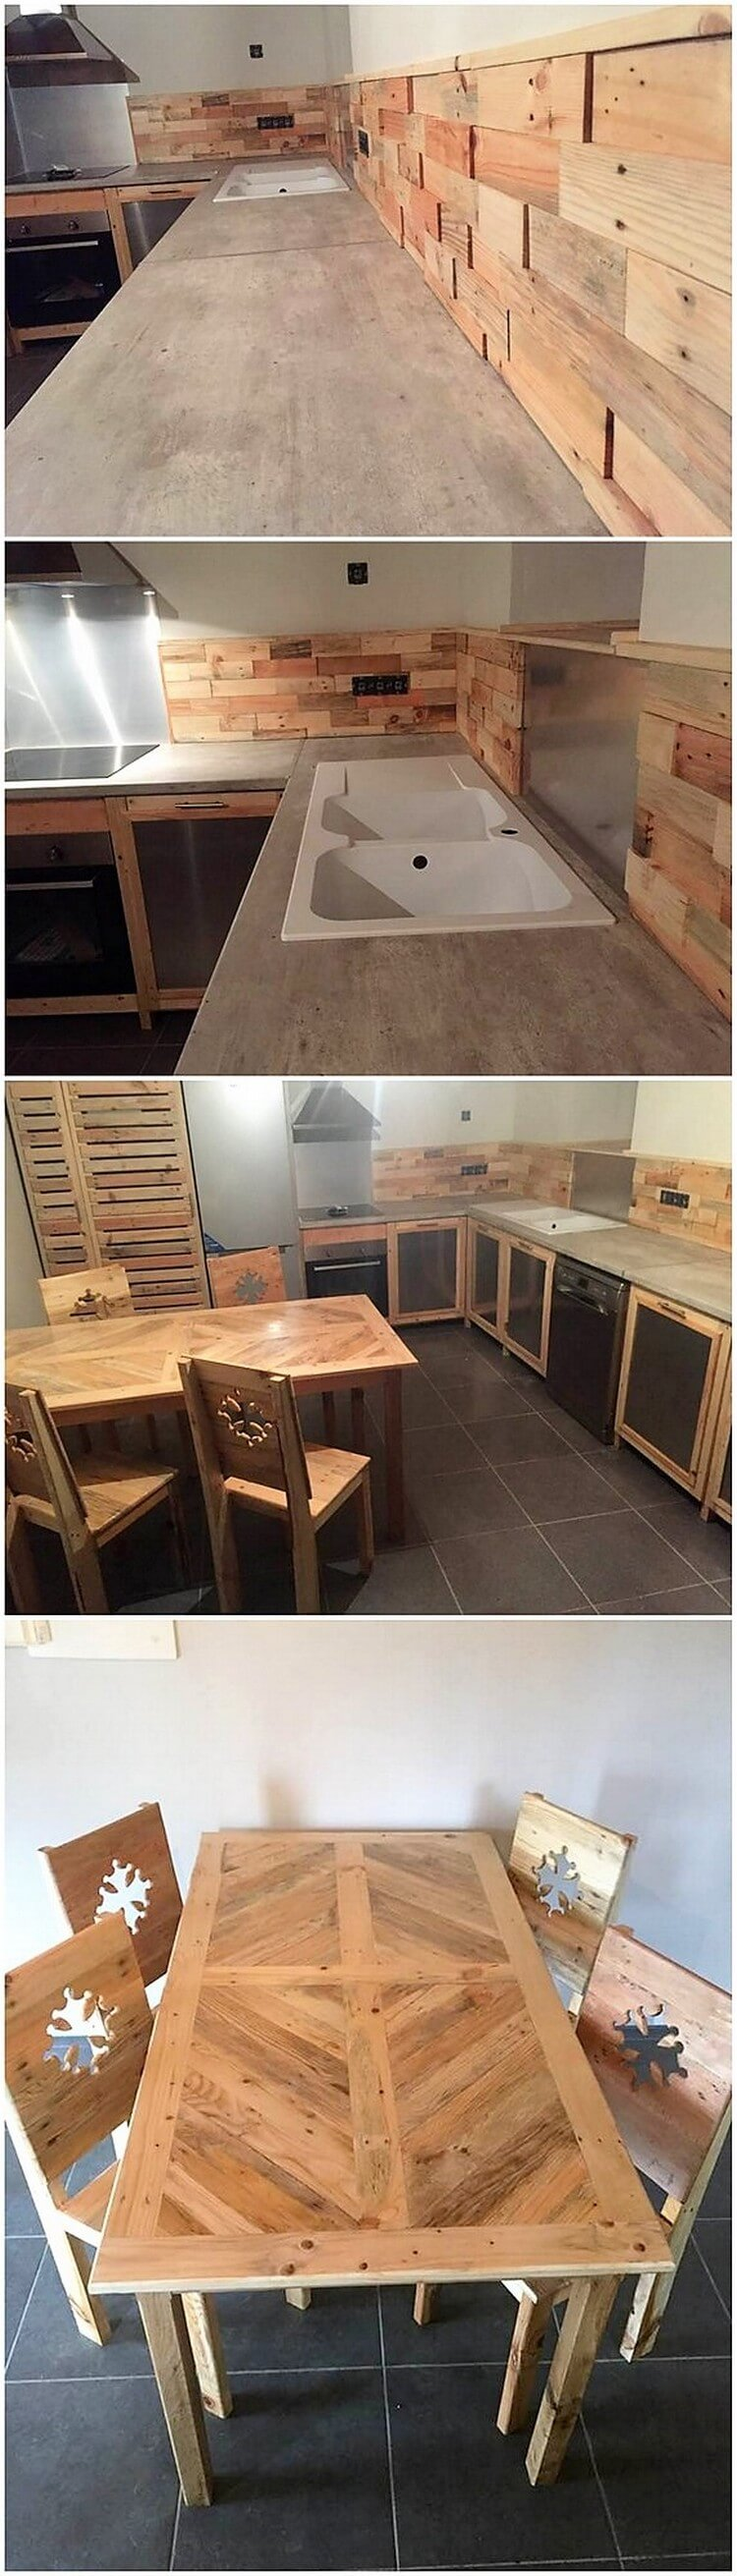 Pallet Kitchen Creation and Dining Furniture